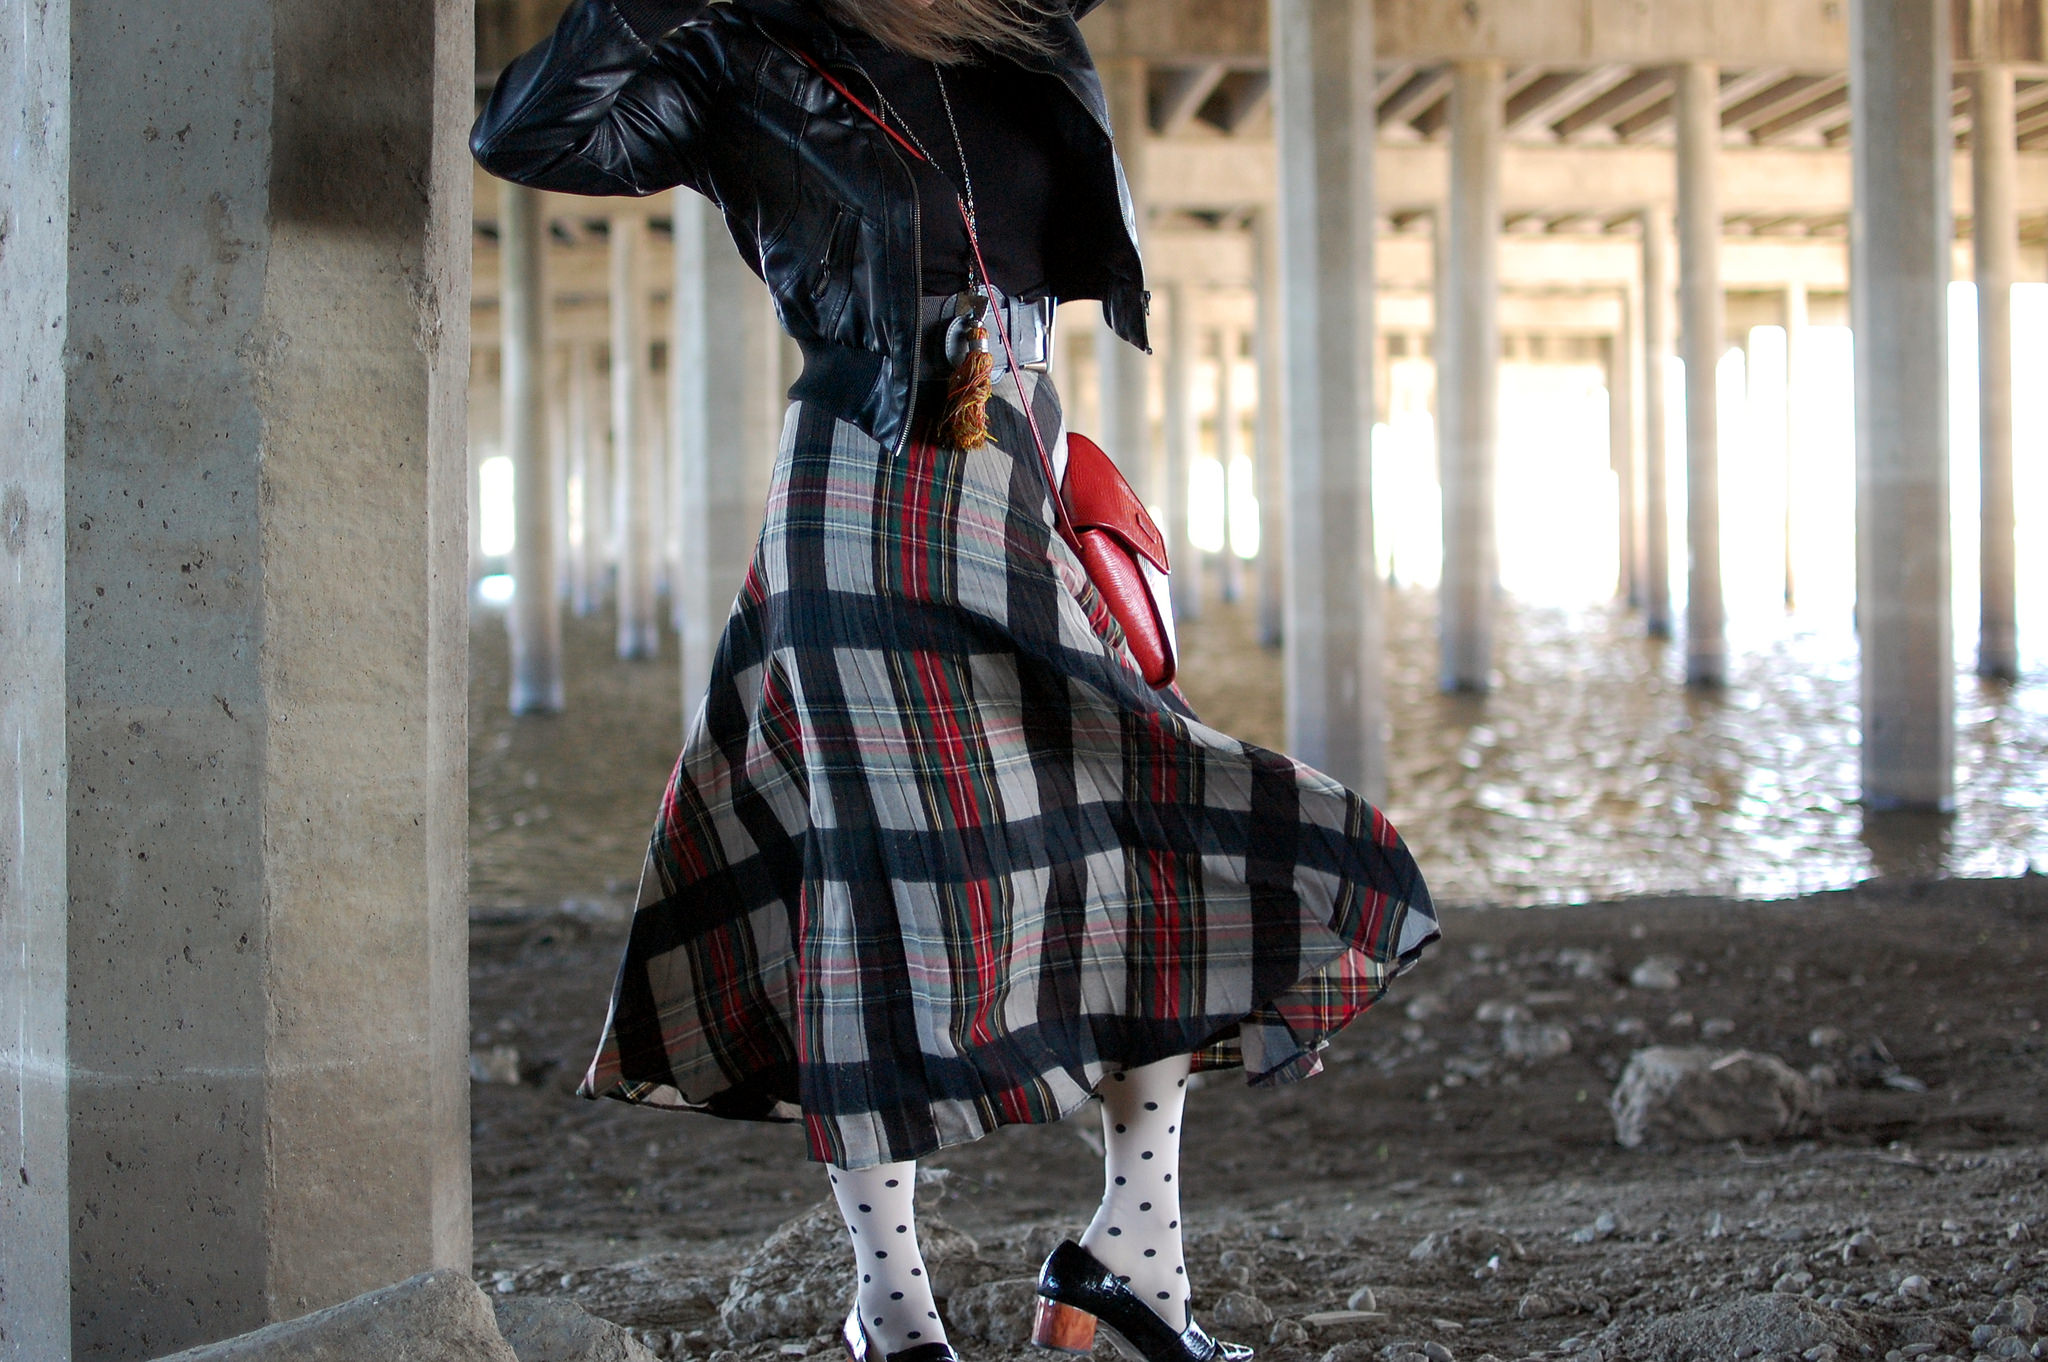 plaid skirt polka dot tights daily outfit blog ootd whatiwore2day